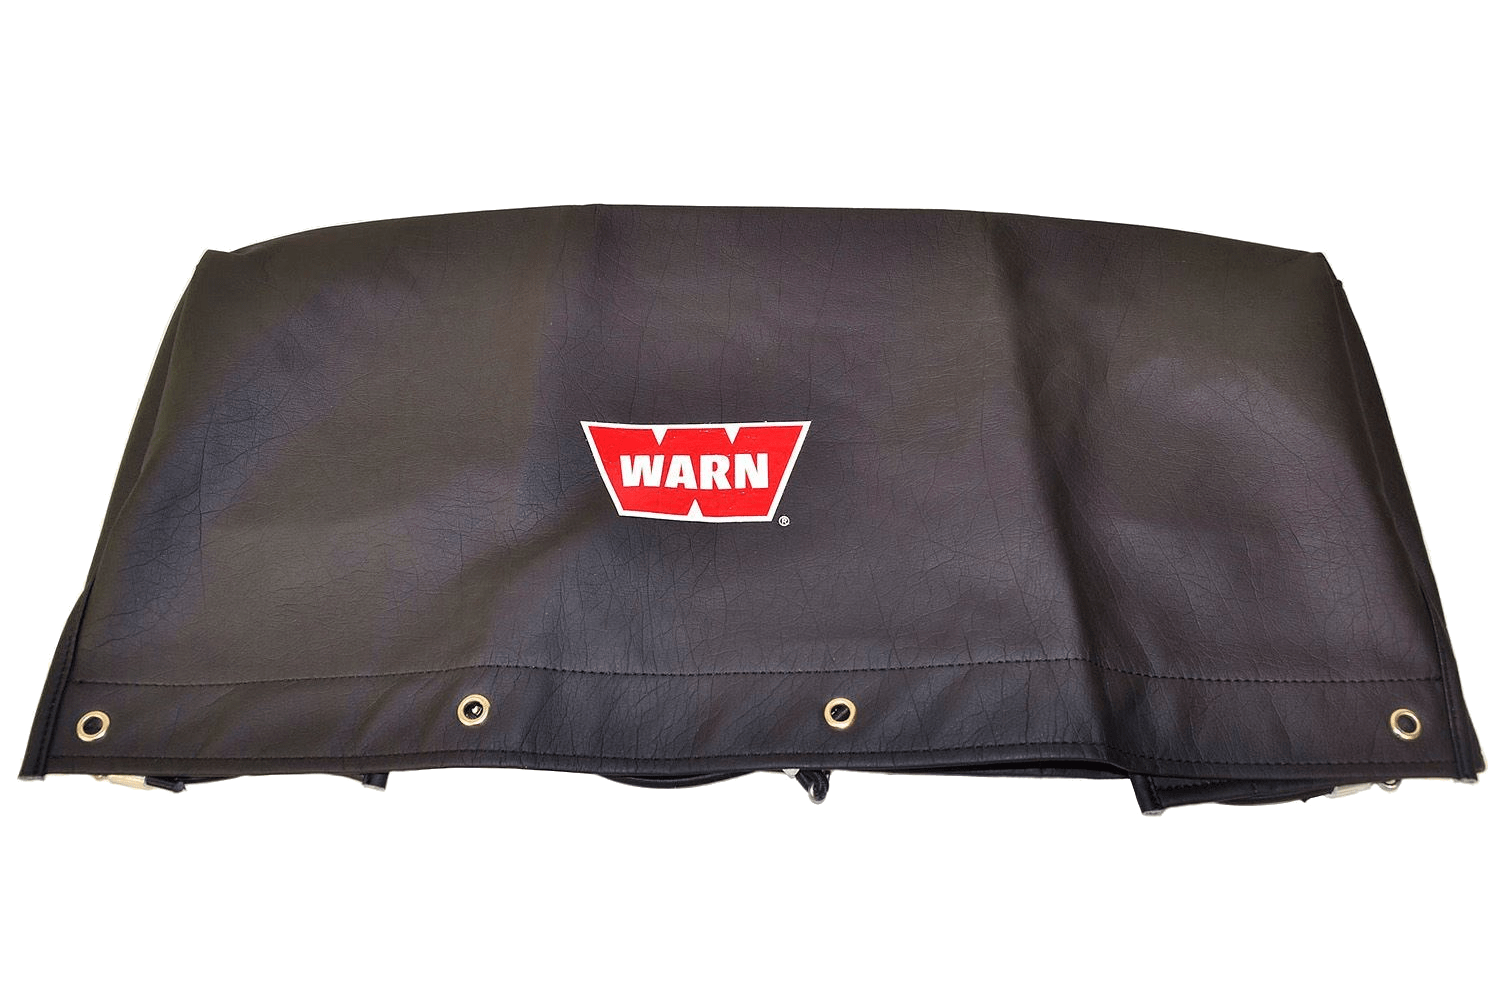 Warn truck & suv winch cover